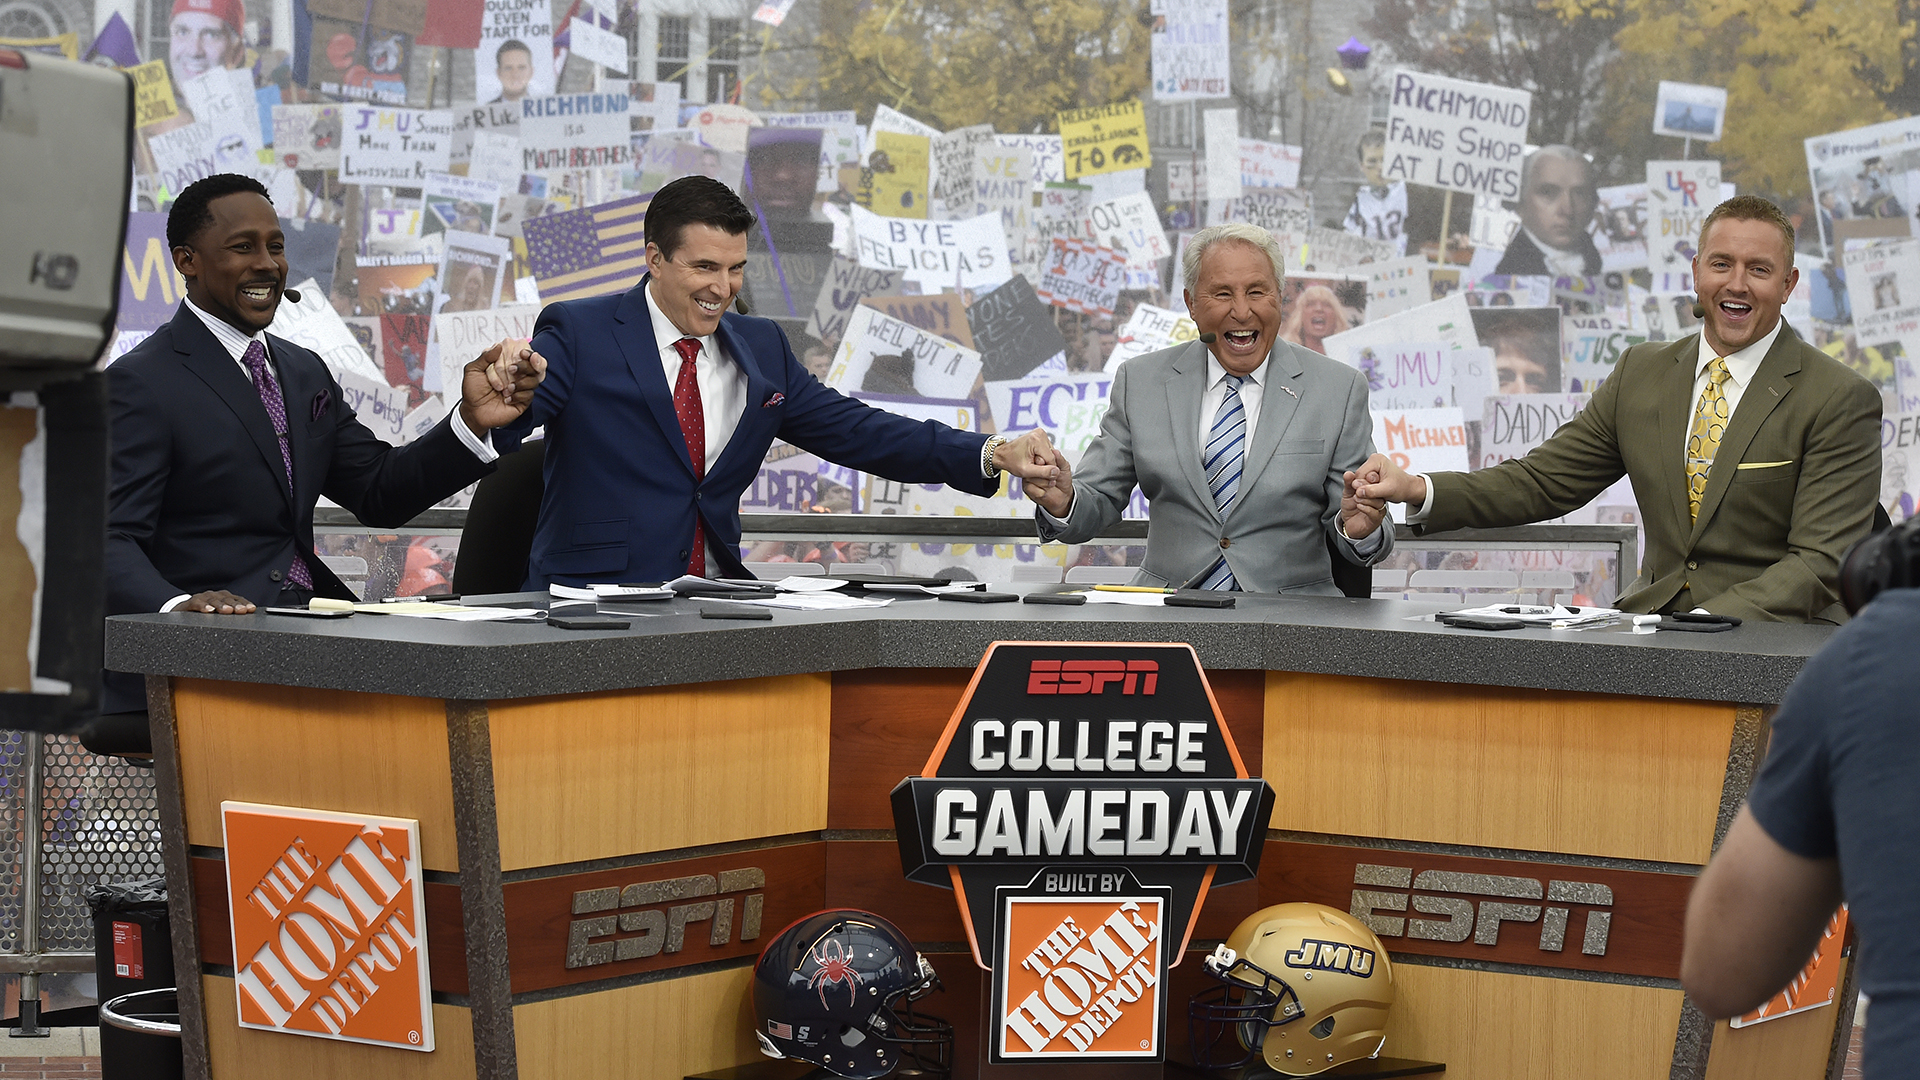 Espn S College Gameday To Return To Jmu S Quad Oct 14 James